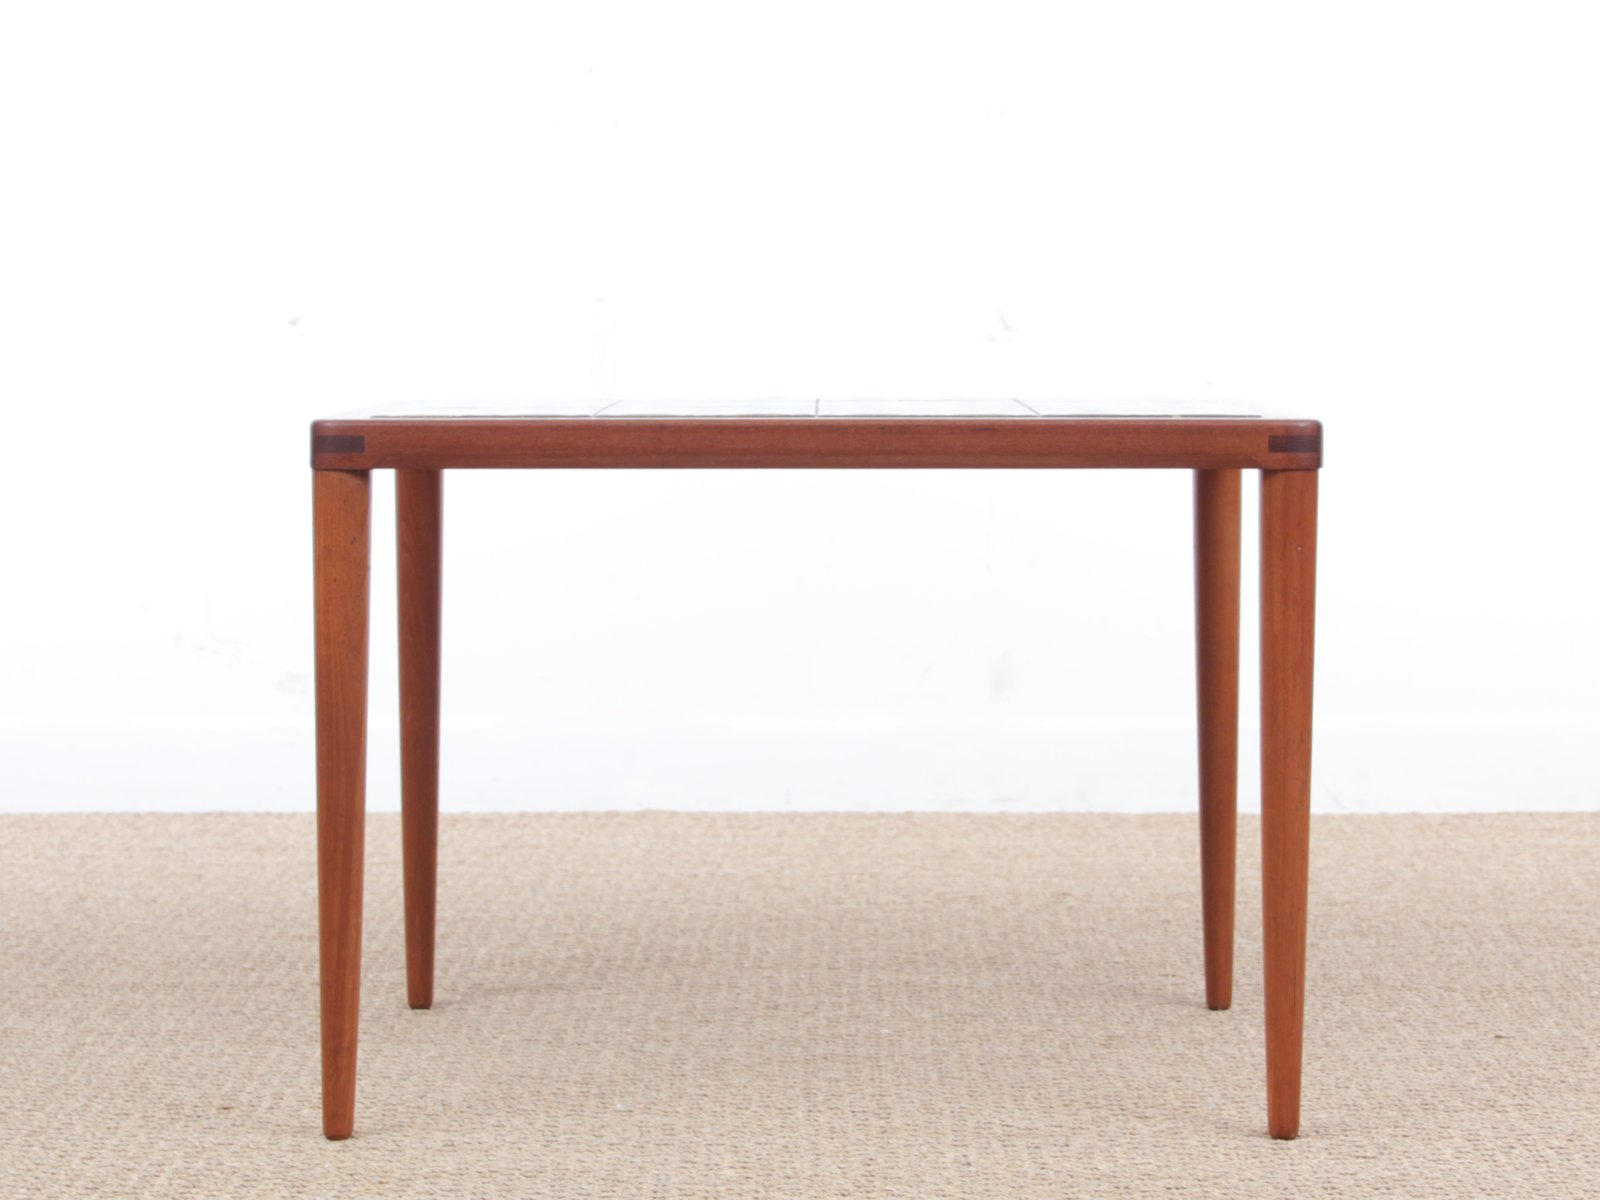 Mid century modern teak coffee table with ceramic tiles by h w klein for sale at pamono Modern teak coffee table